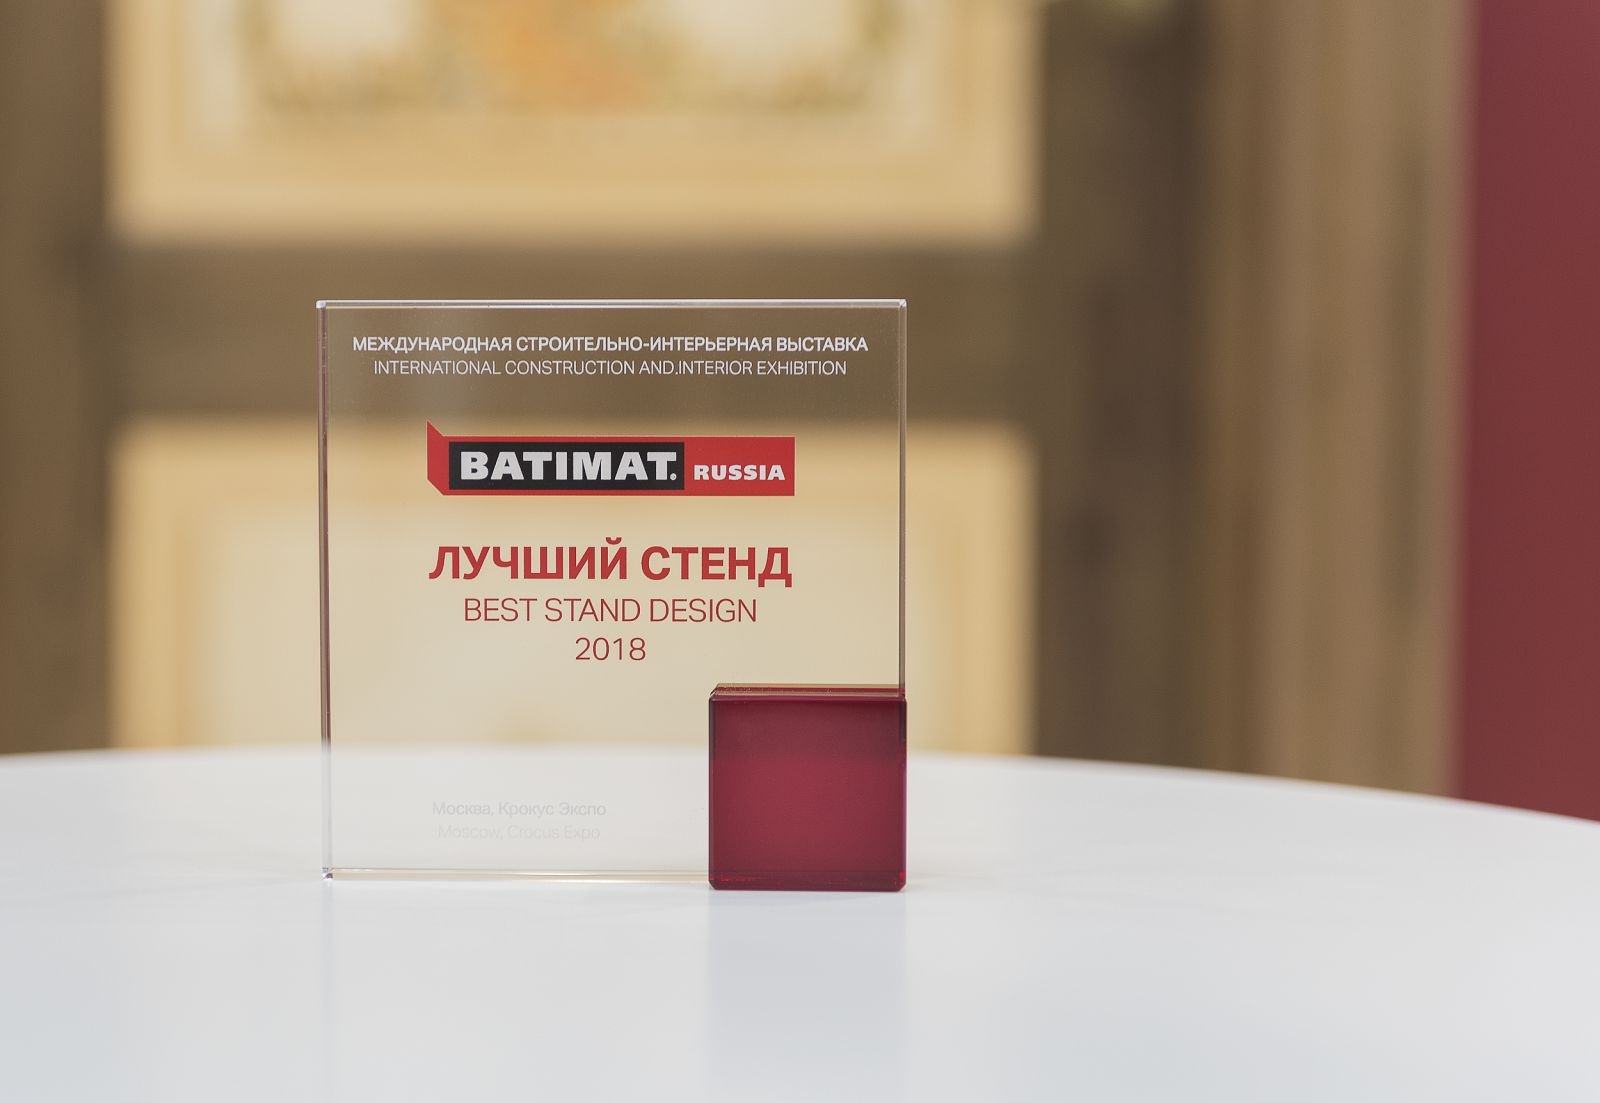 Best_Stend_Design-batimat.